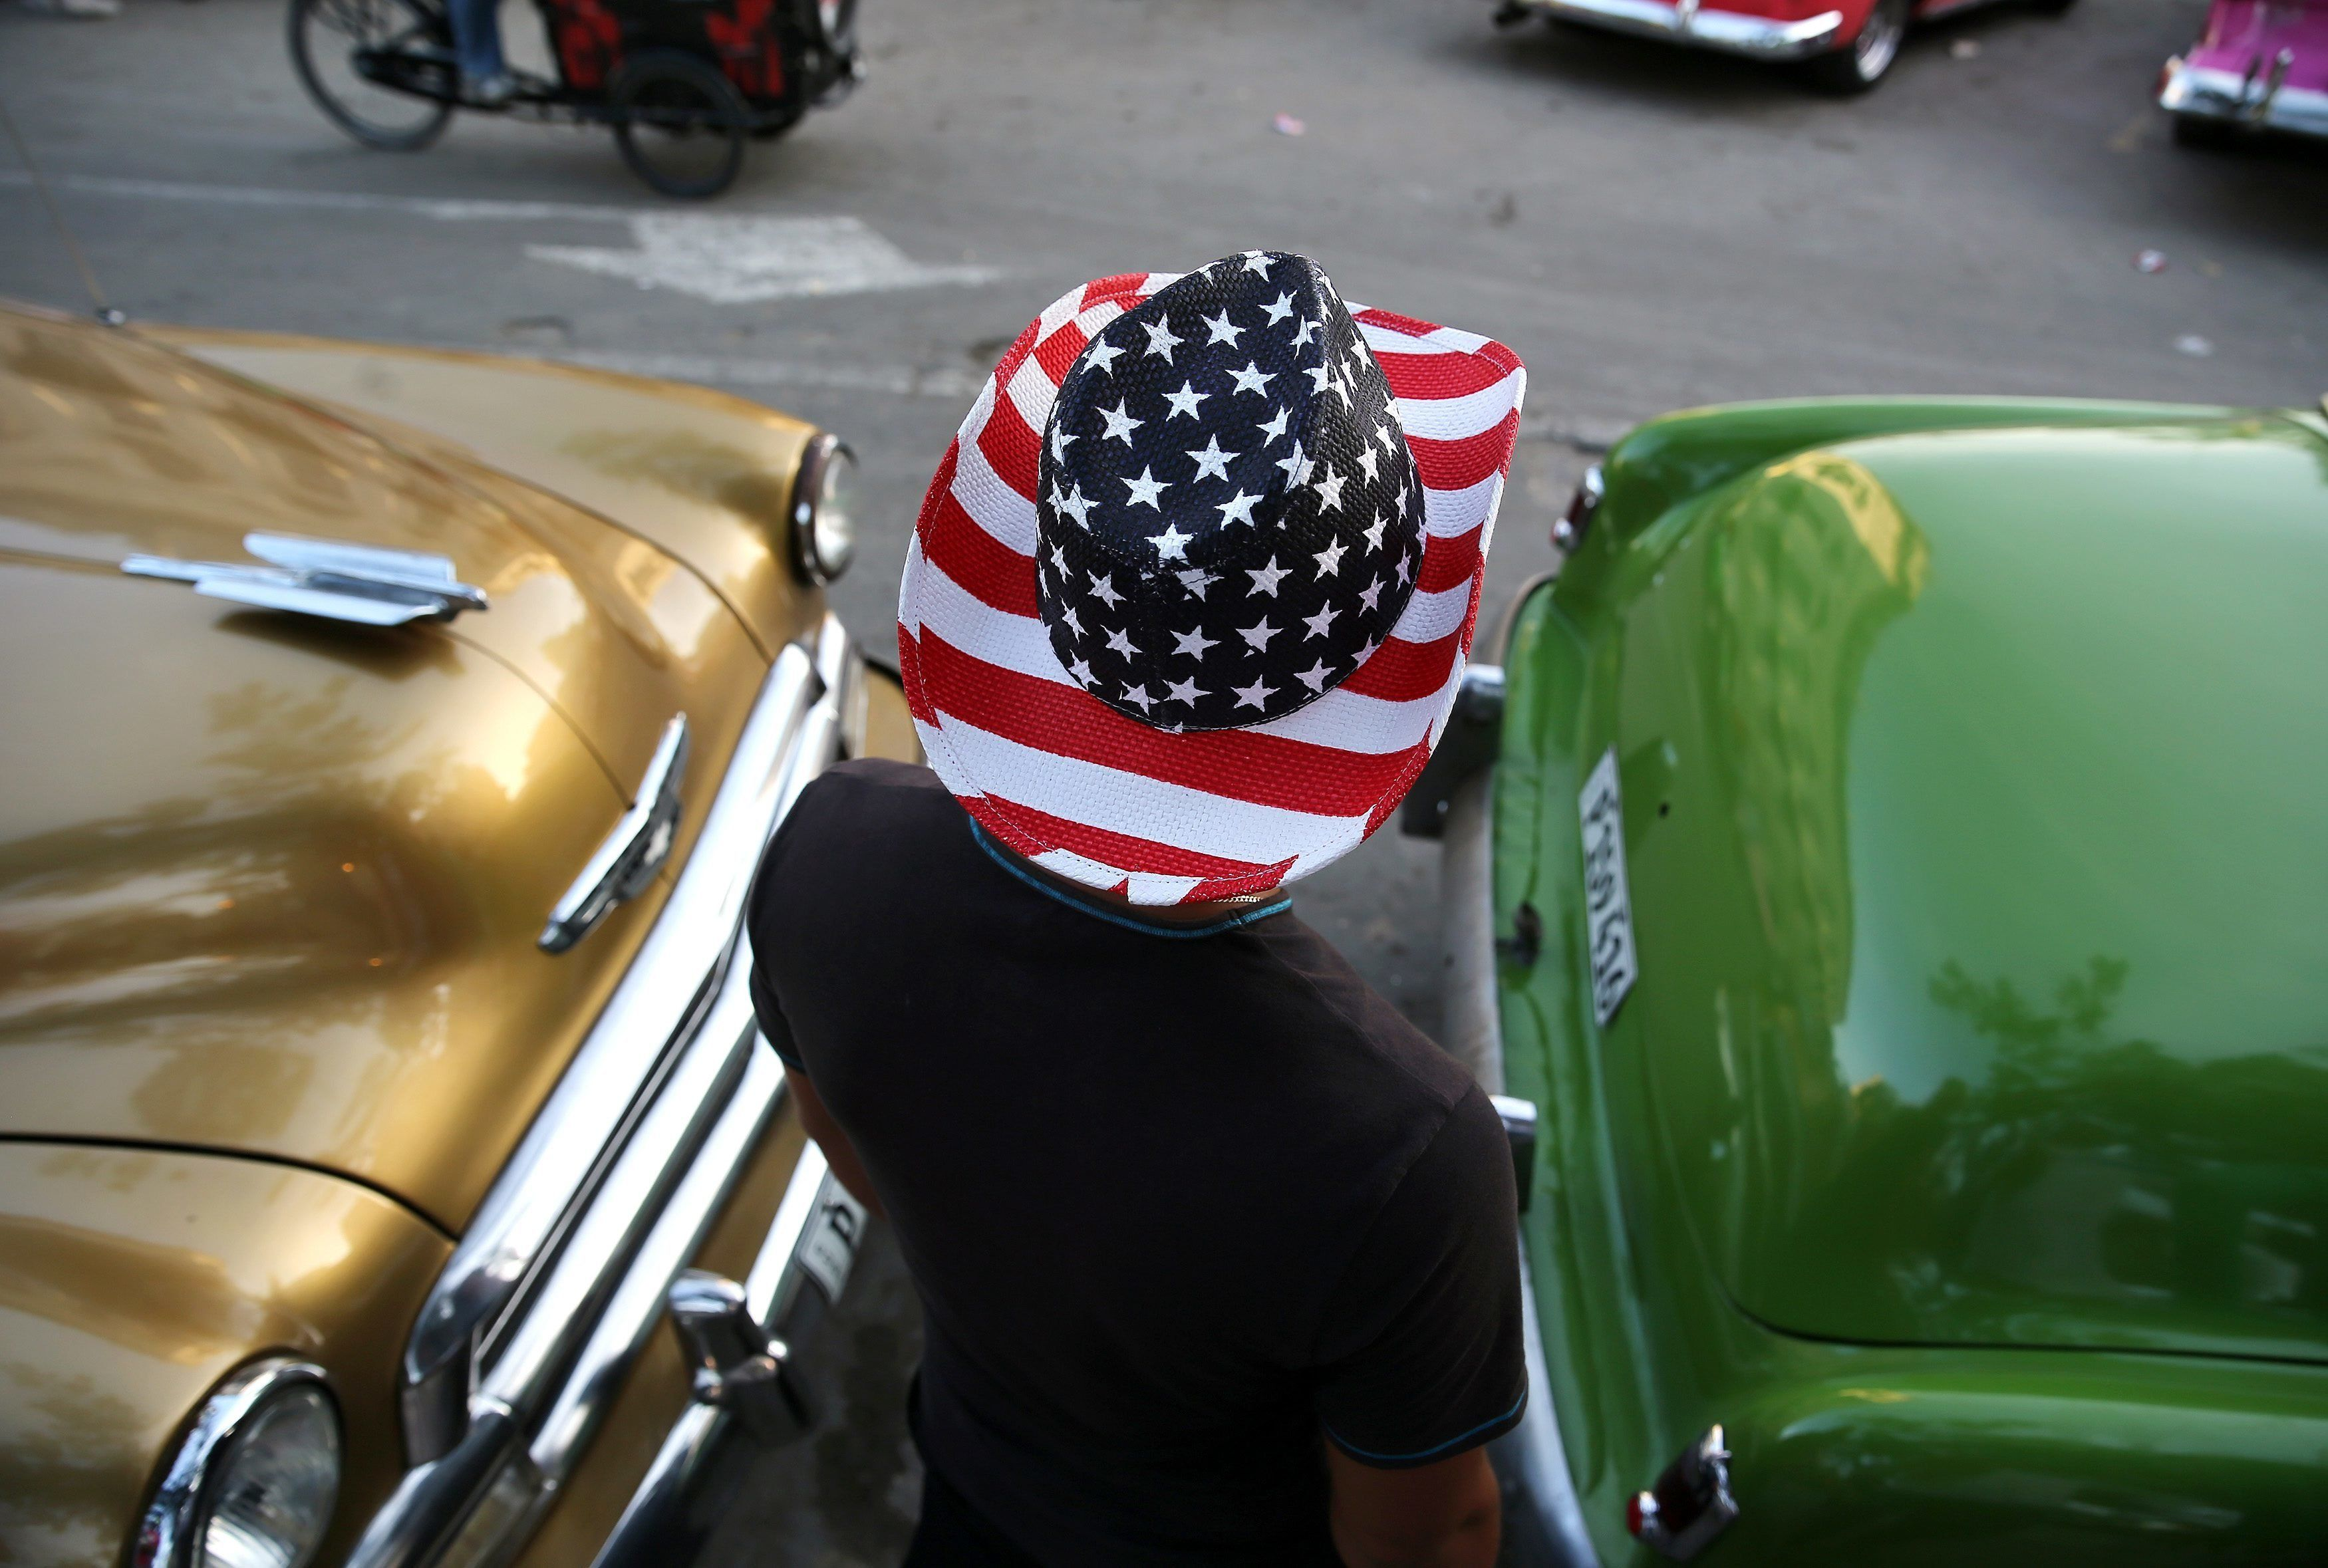 10 Mar 2016, Havana, Cuba --- epa05204982 A man wears a hat with the colors of the US national flag in Havana, Cuba, 10 March 2016. US President Barack Obama is scheduled to visit the island on 20 March 2016. EPA/ALEJANDRO ERNESTO --- Image by � ALEJANDRO ERNESTO/epa/Corbis